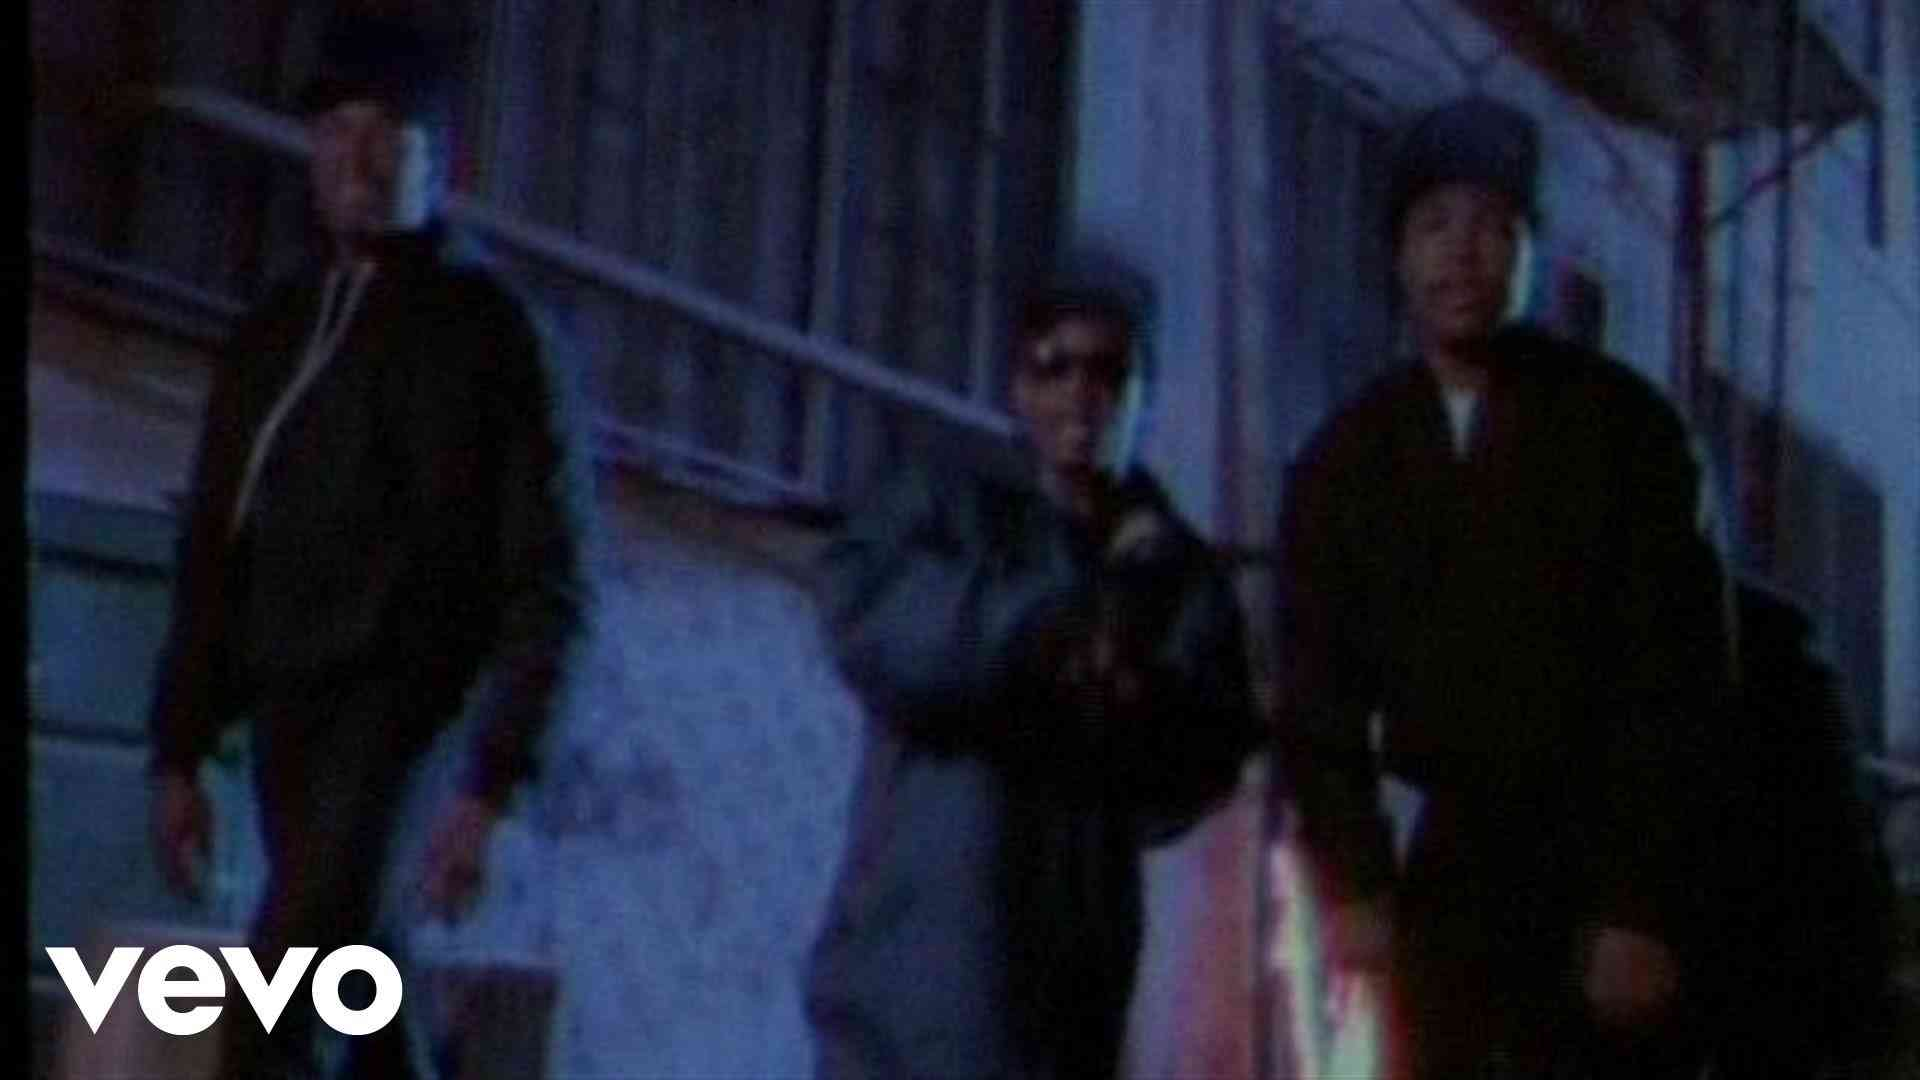 N.W.A. - Straight Outta Compton - YouTube